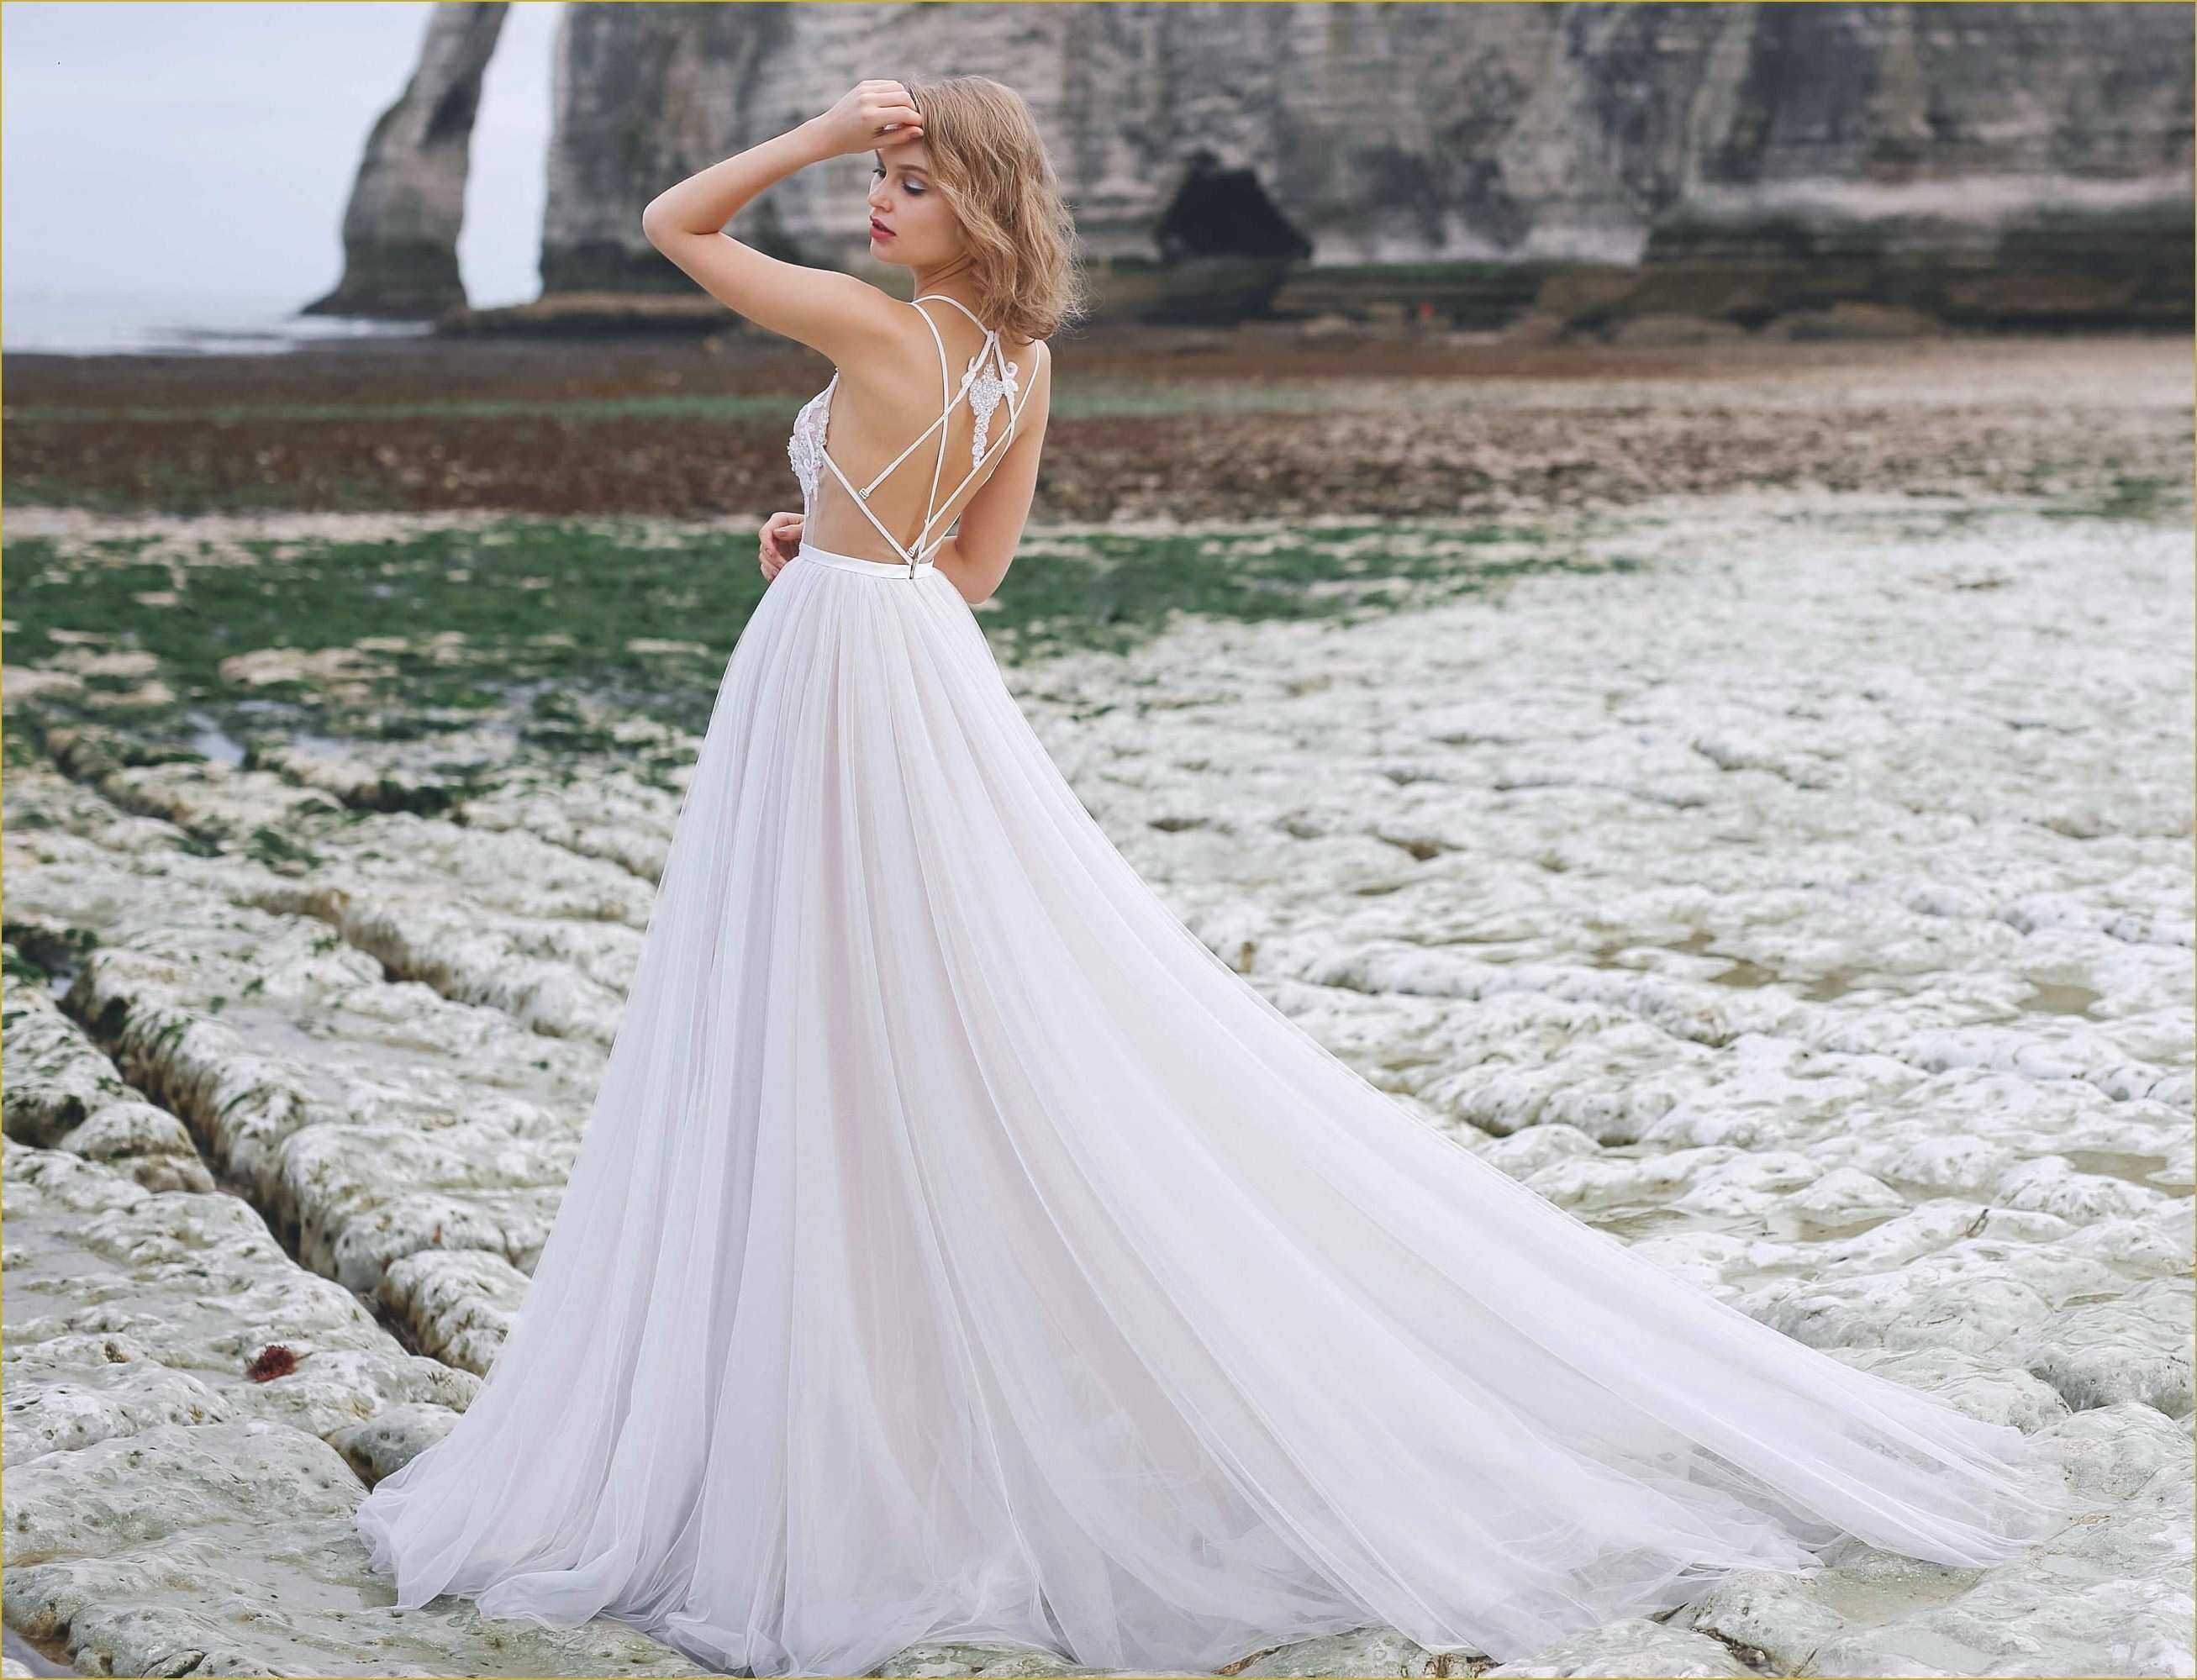 Admirable Places to Buy Wedding Dresses